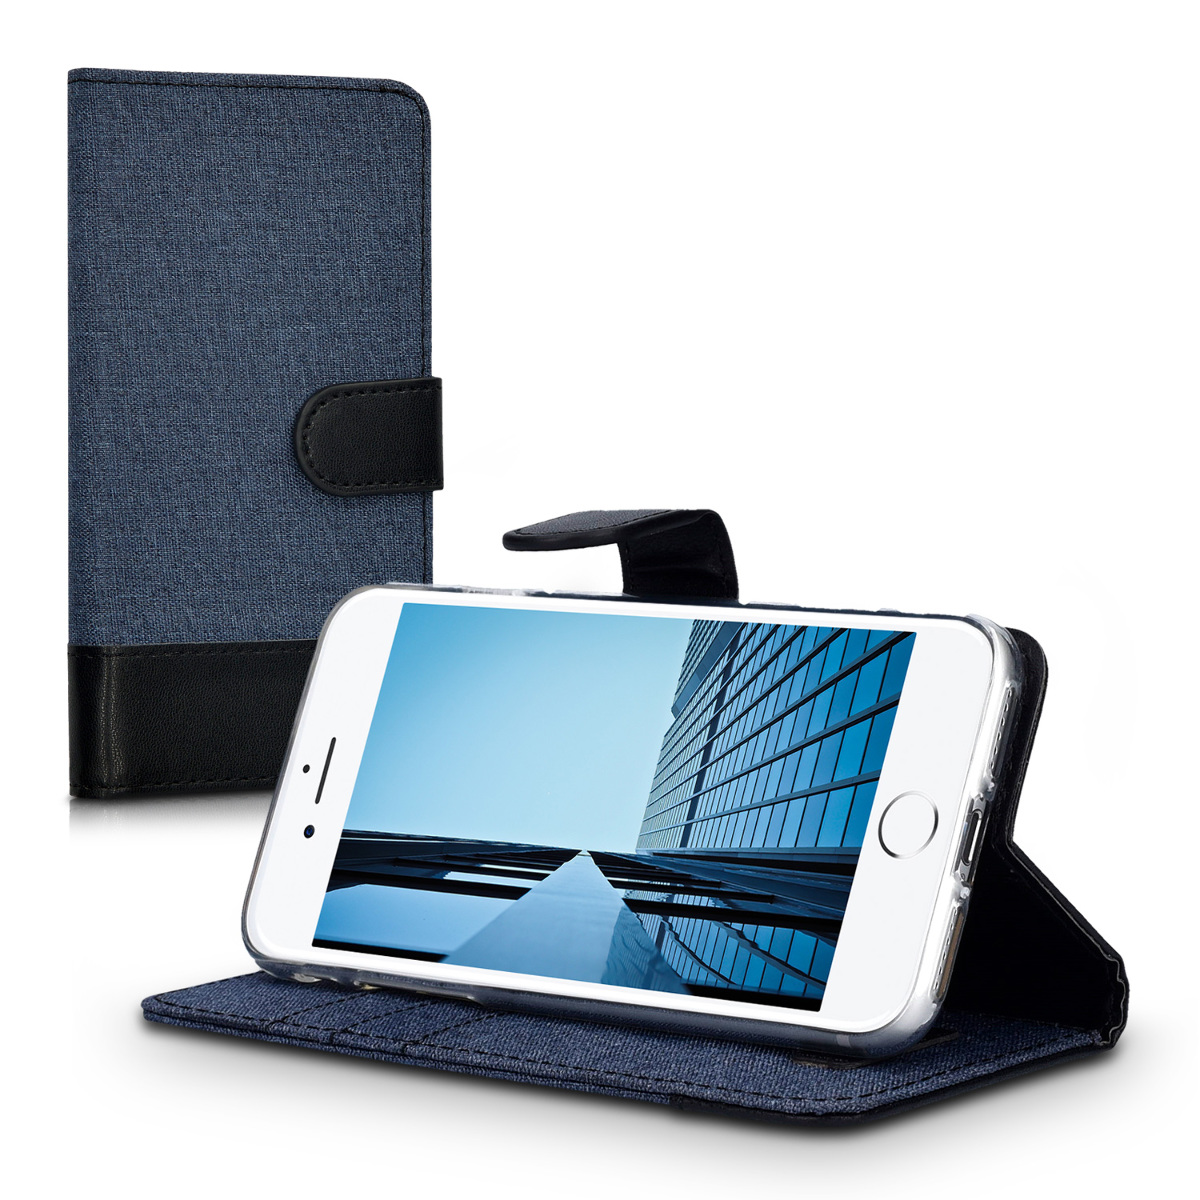 kwmobile-HOUSSE-DE-PROTECTION-EN-CUIR-SYNTHETIQUE-POUR-APPLE-IPHONE-7-8-ETUI